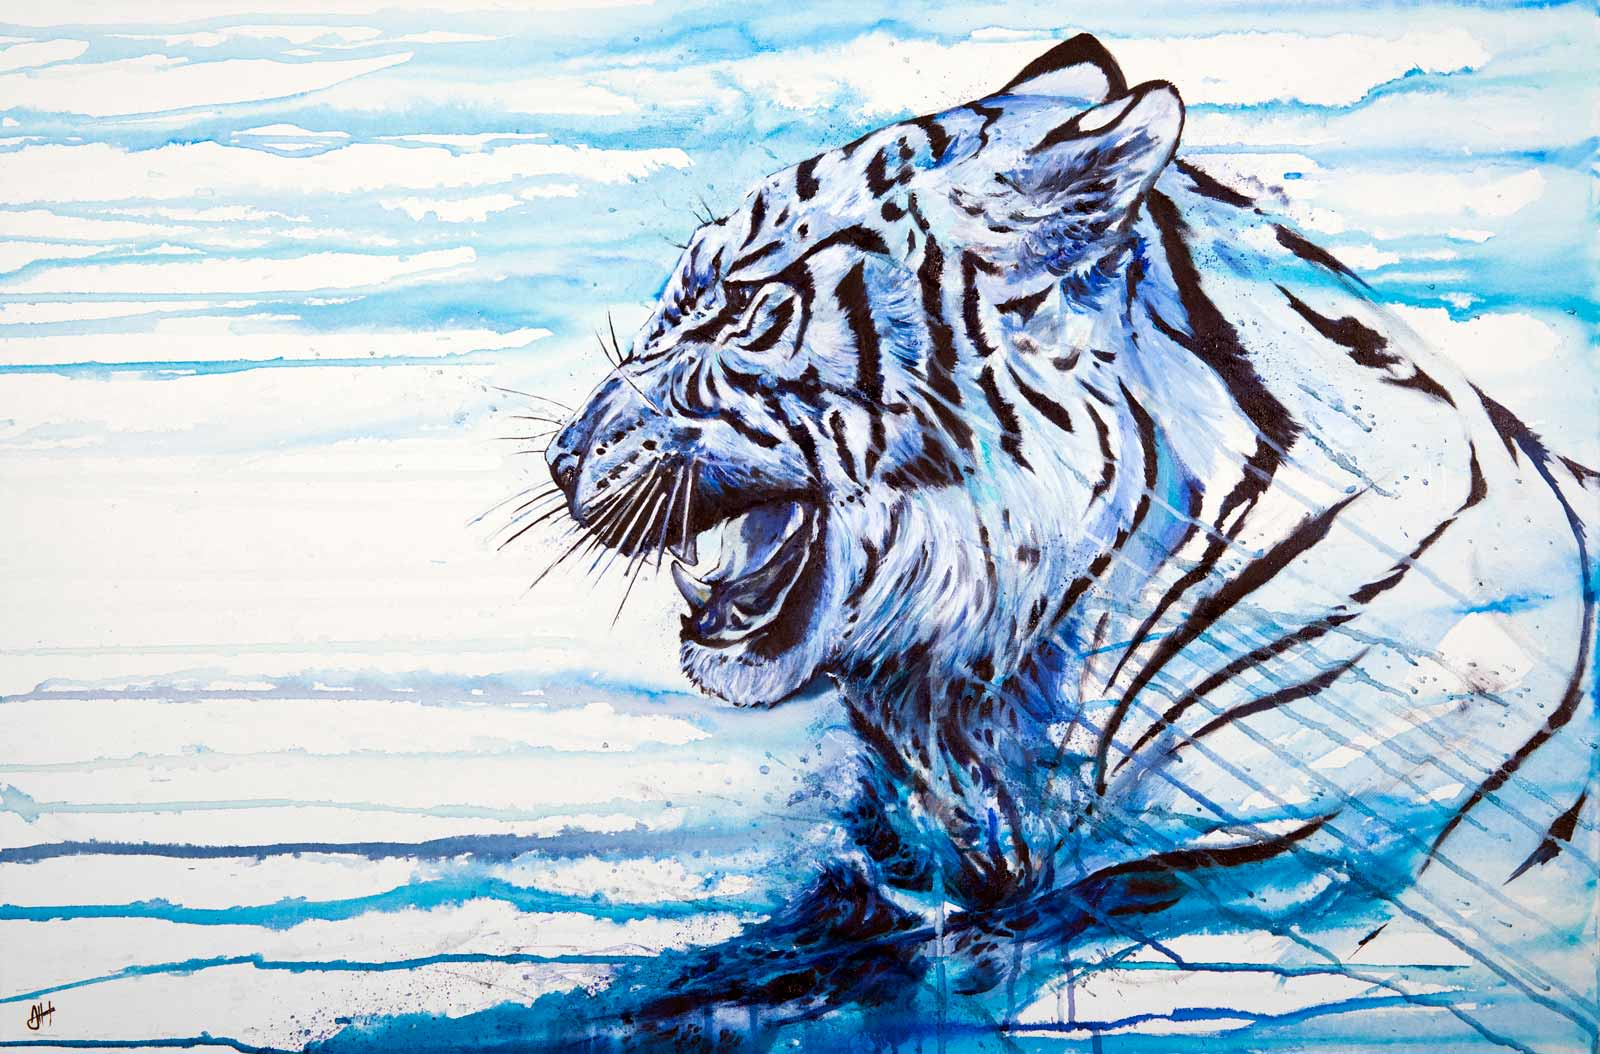 mixed media painting using ink watercolour and paint featuring a tiger by marc allante